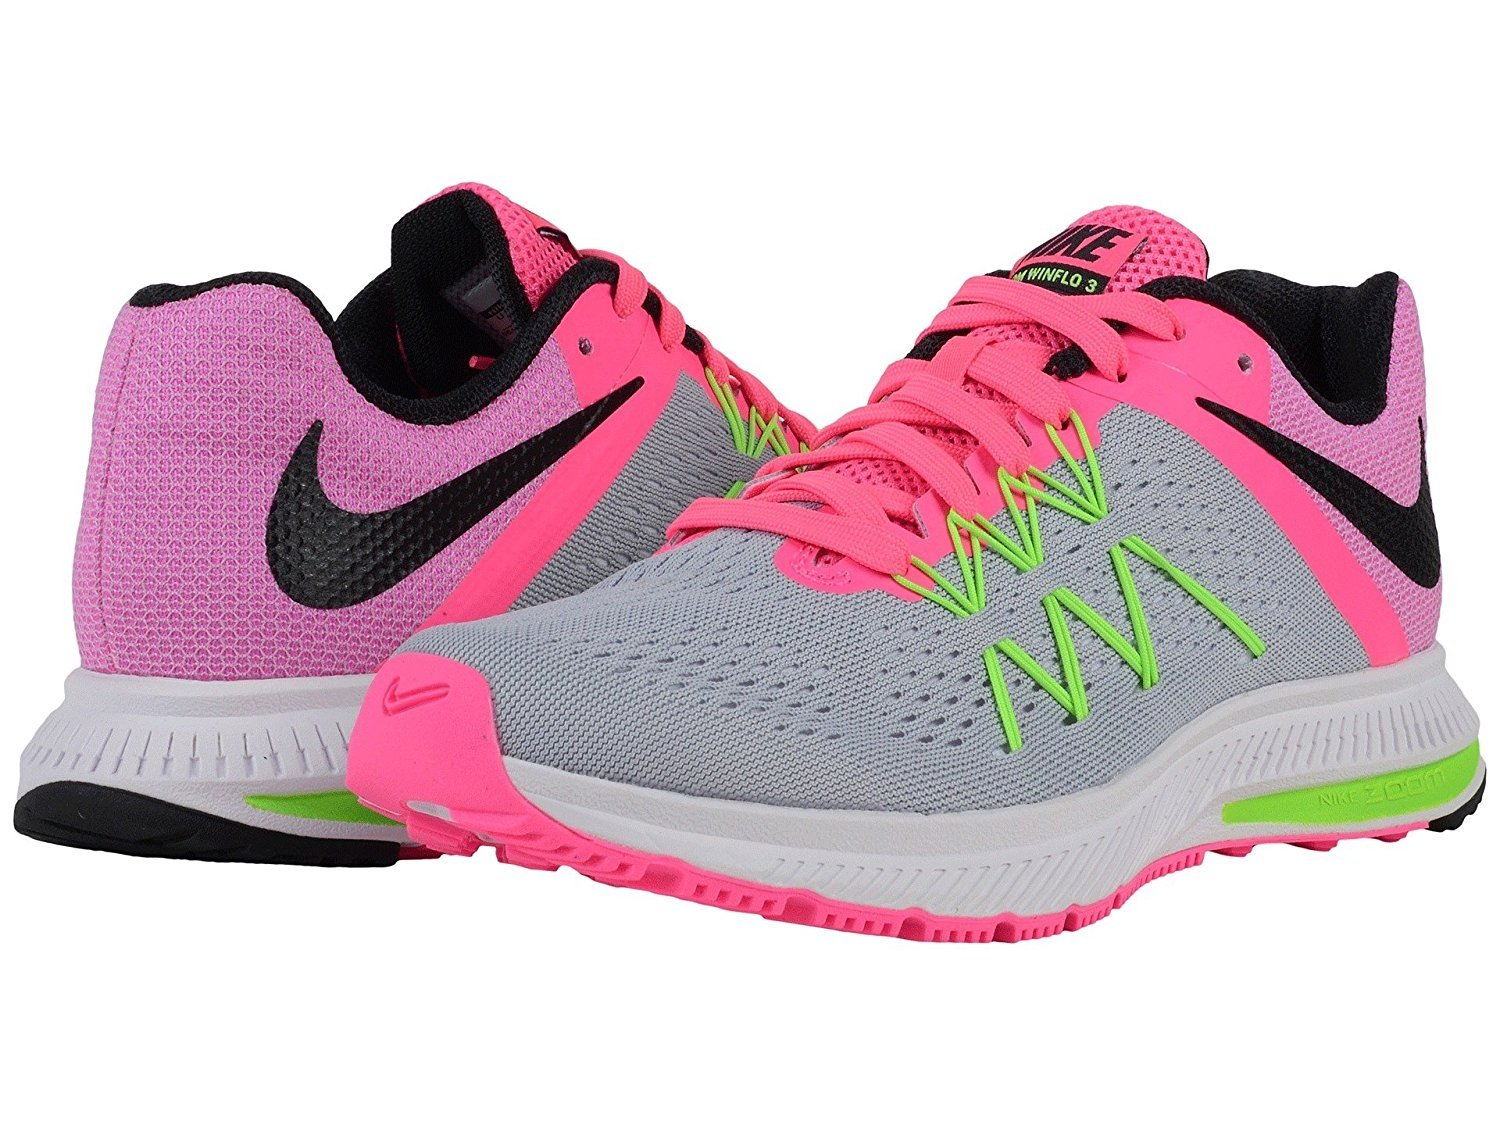 867c0858d18 Nike Women s Zoom Winflo 3 Running Shoe